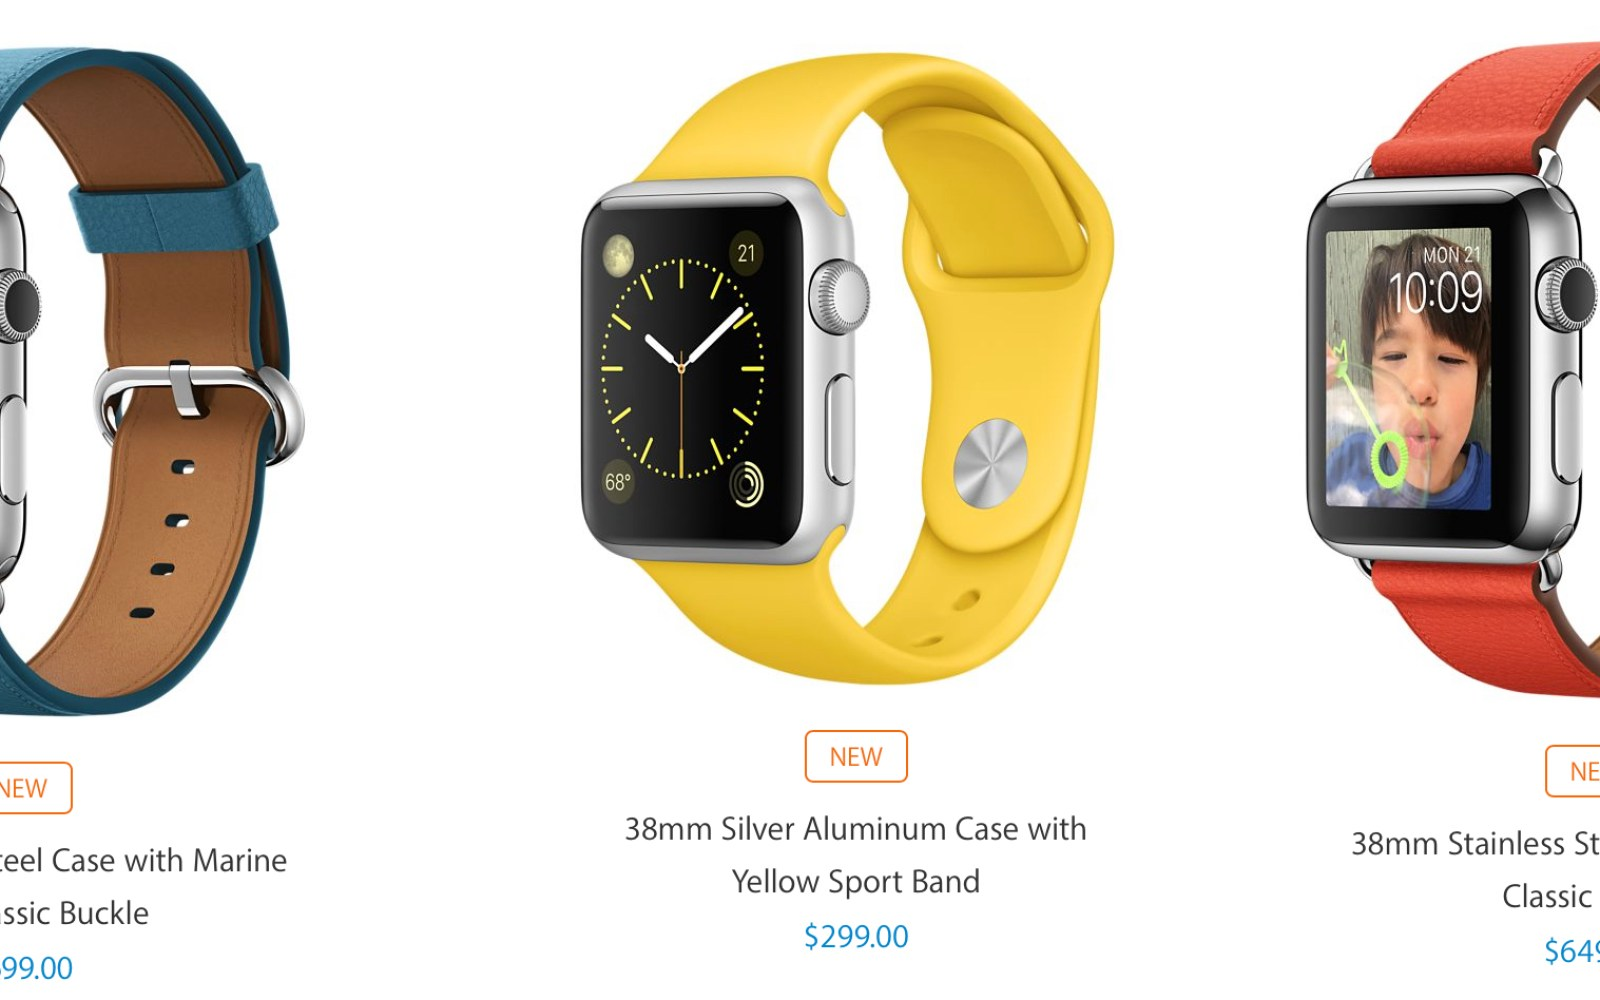 Apple launches variety of new Apple Watch models and band colors